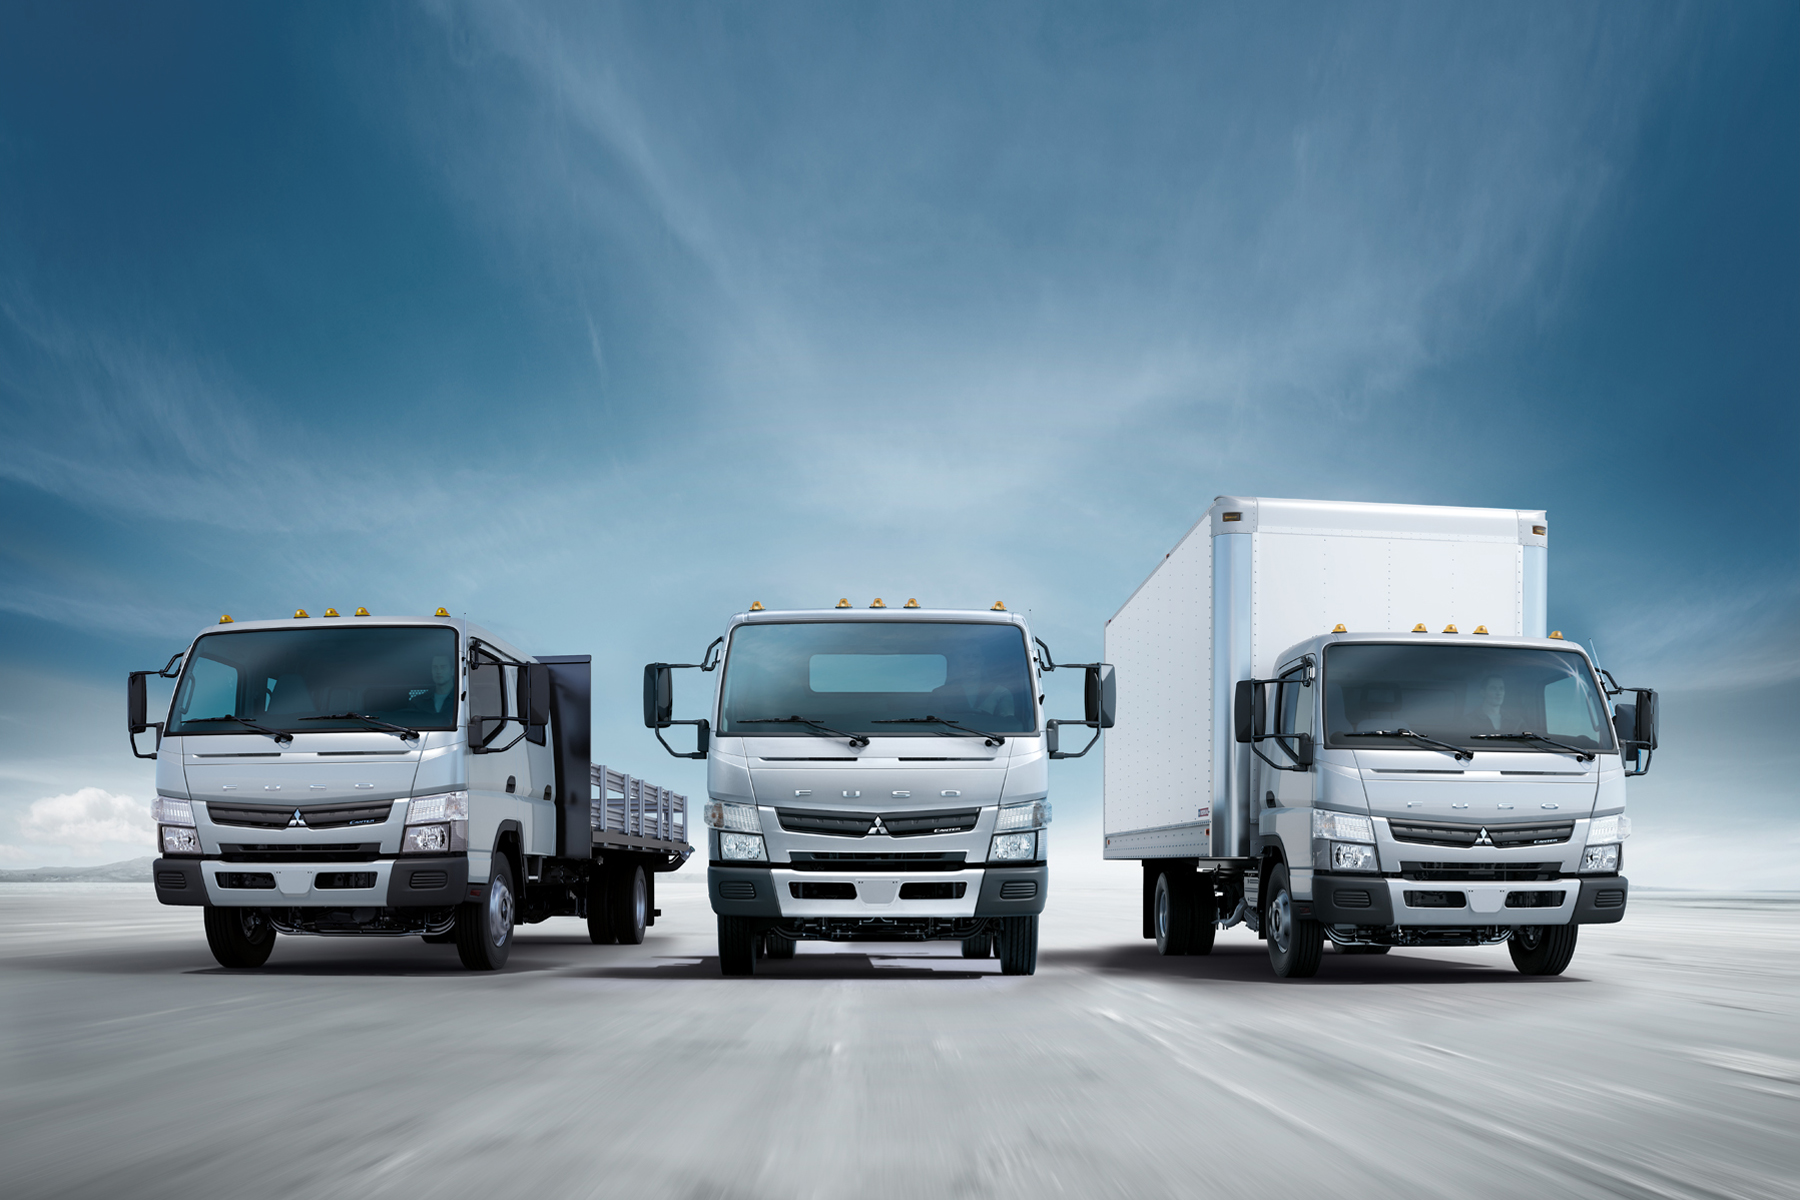 Moving Truck Companies >> Fuso Trucks for Sale: The viable option - Truck & Trailer Blog